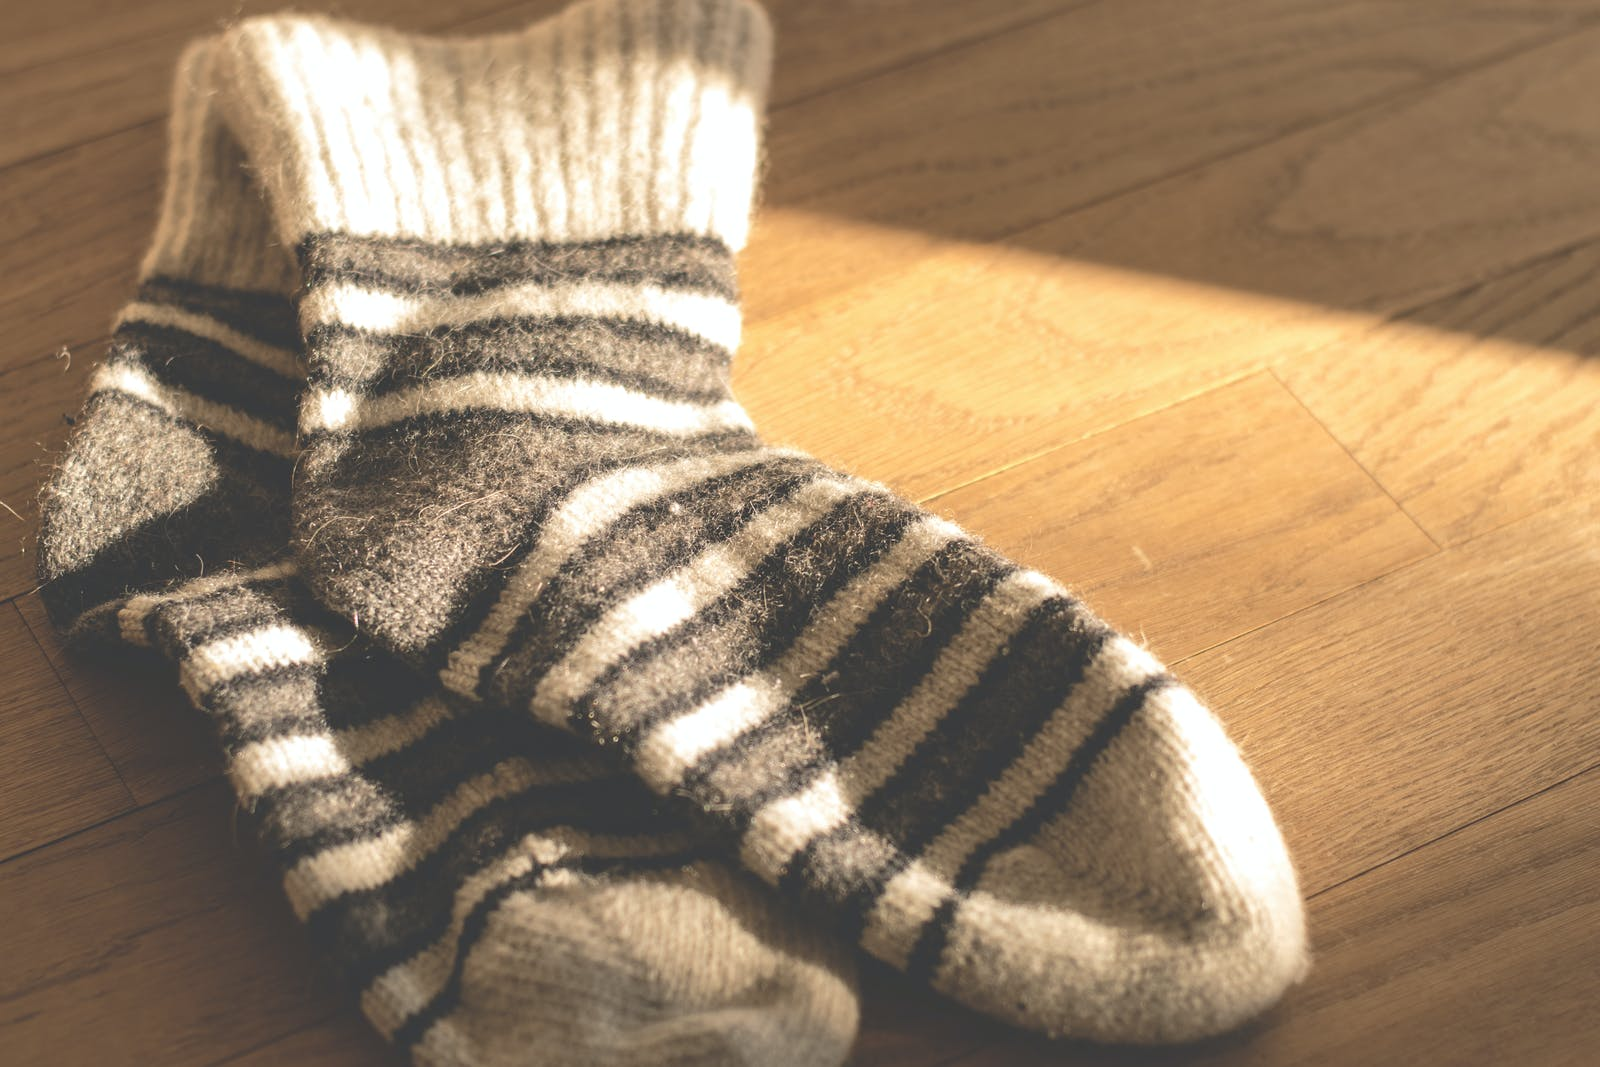 Changing Yarns for Striped Socks